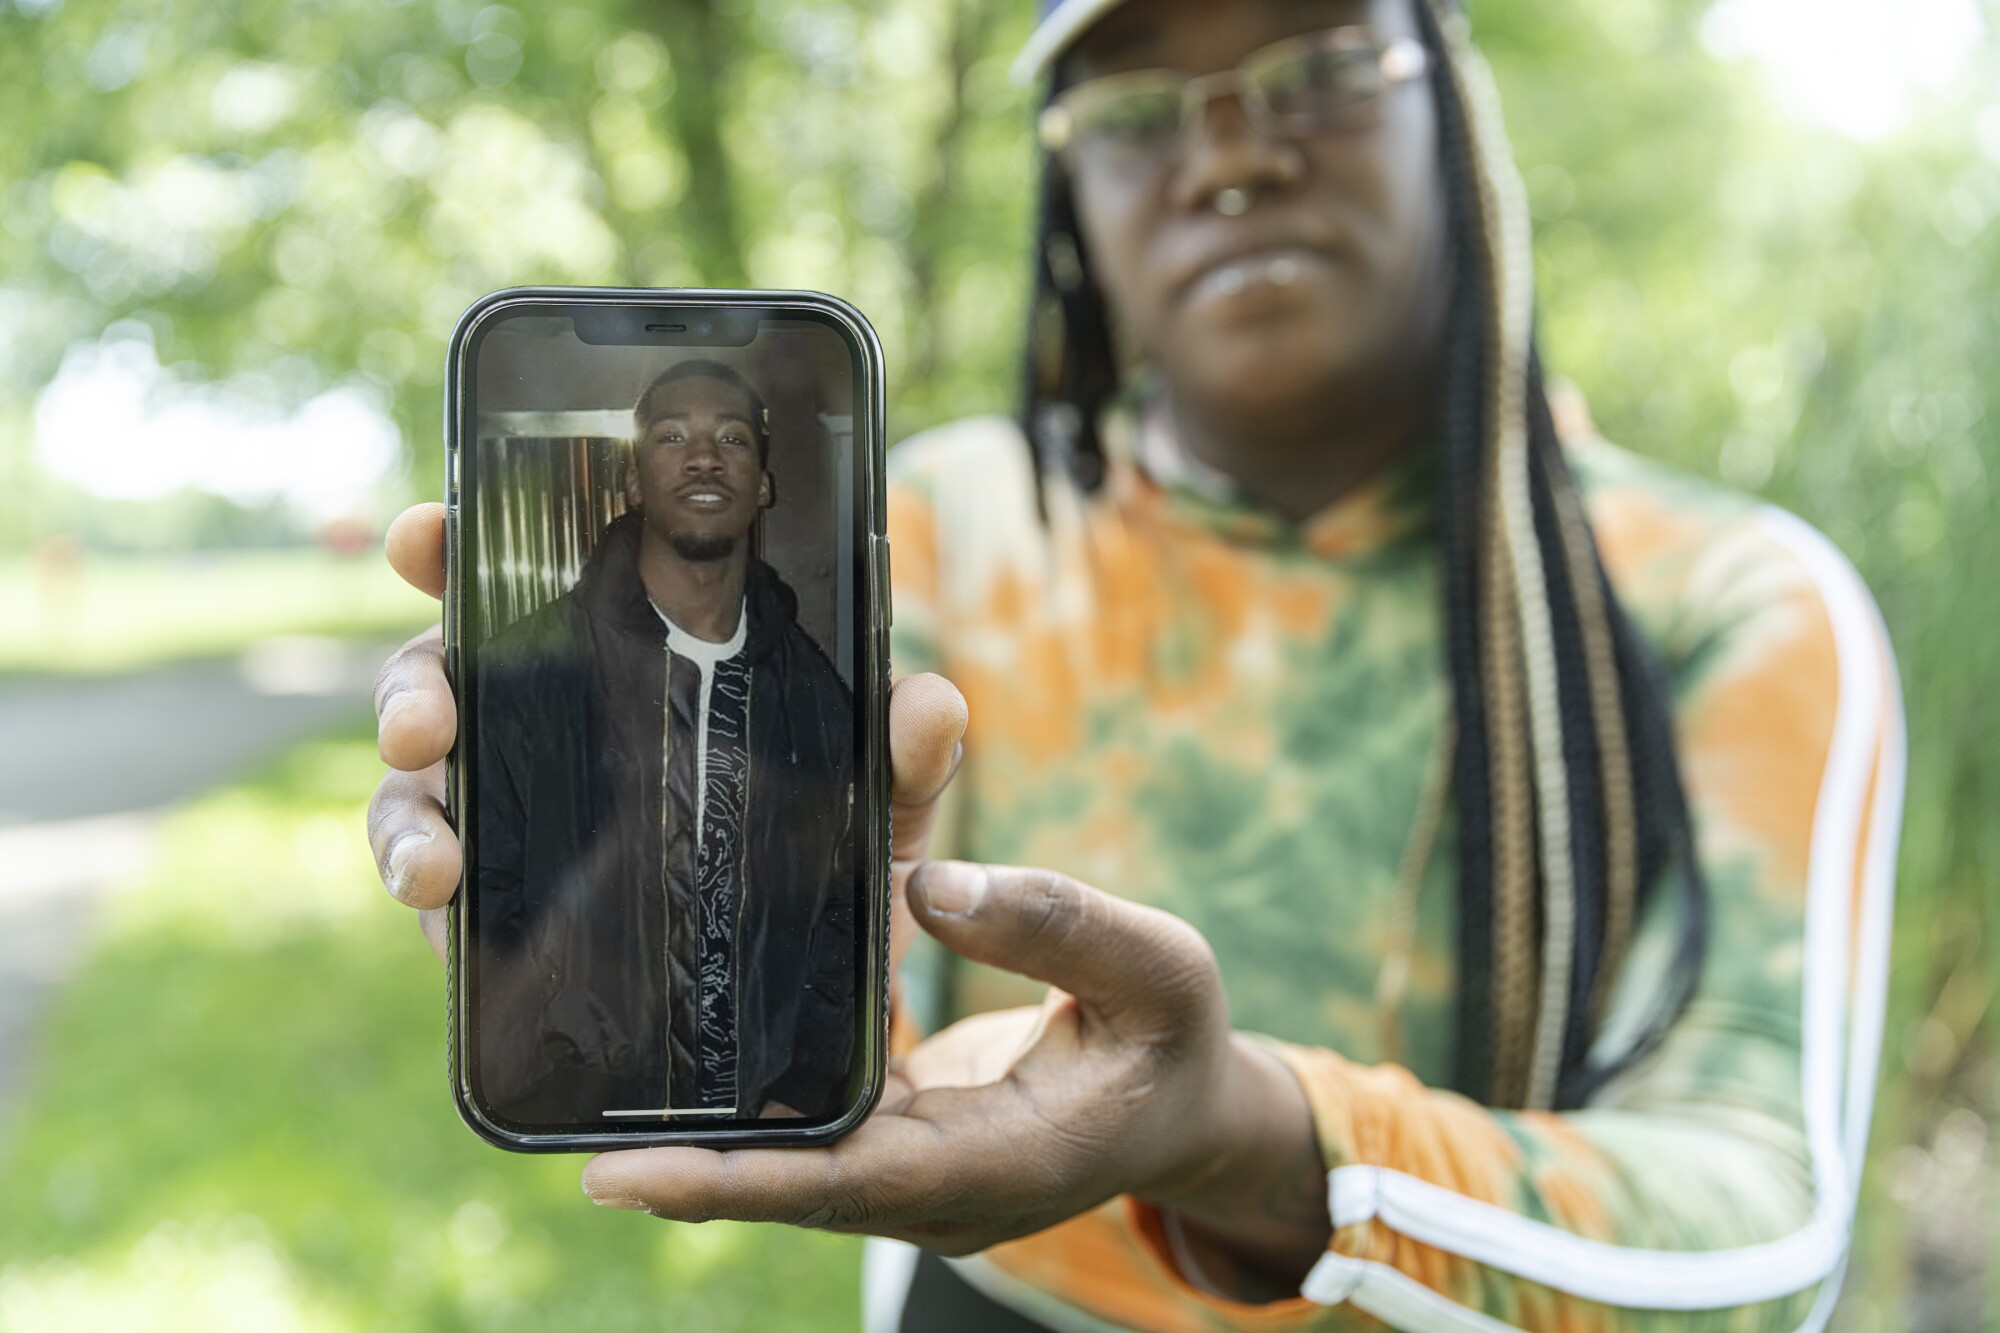 A woman holds up a phone with a photo of a man